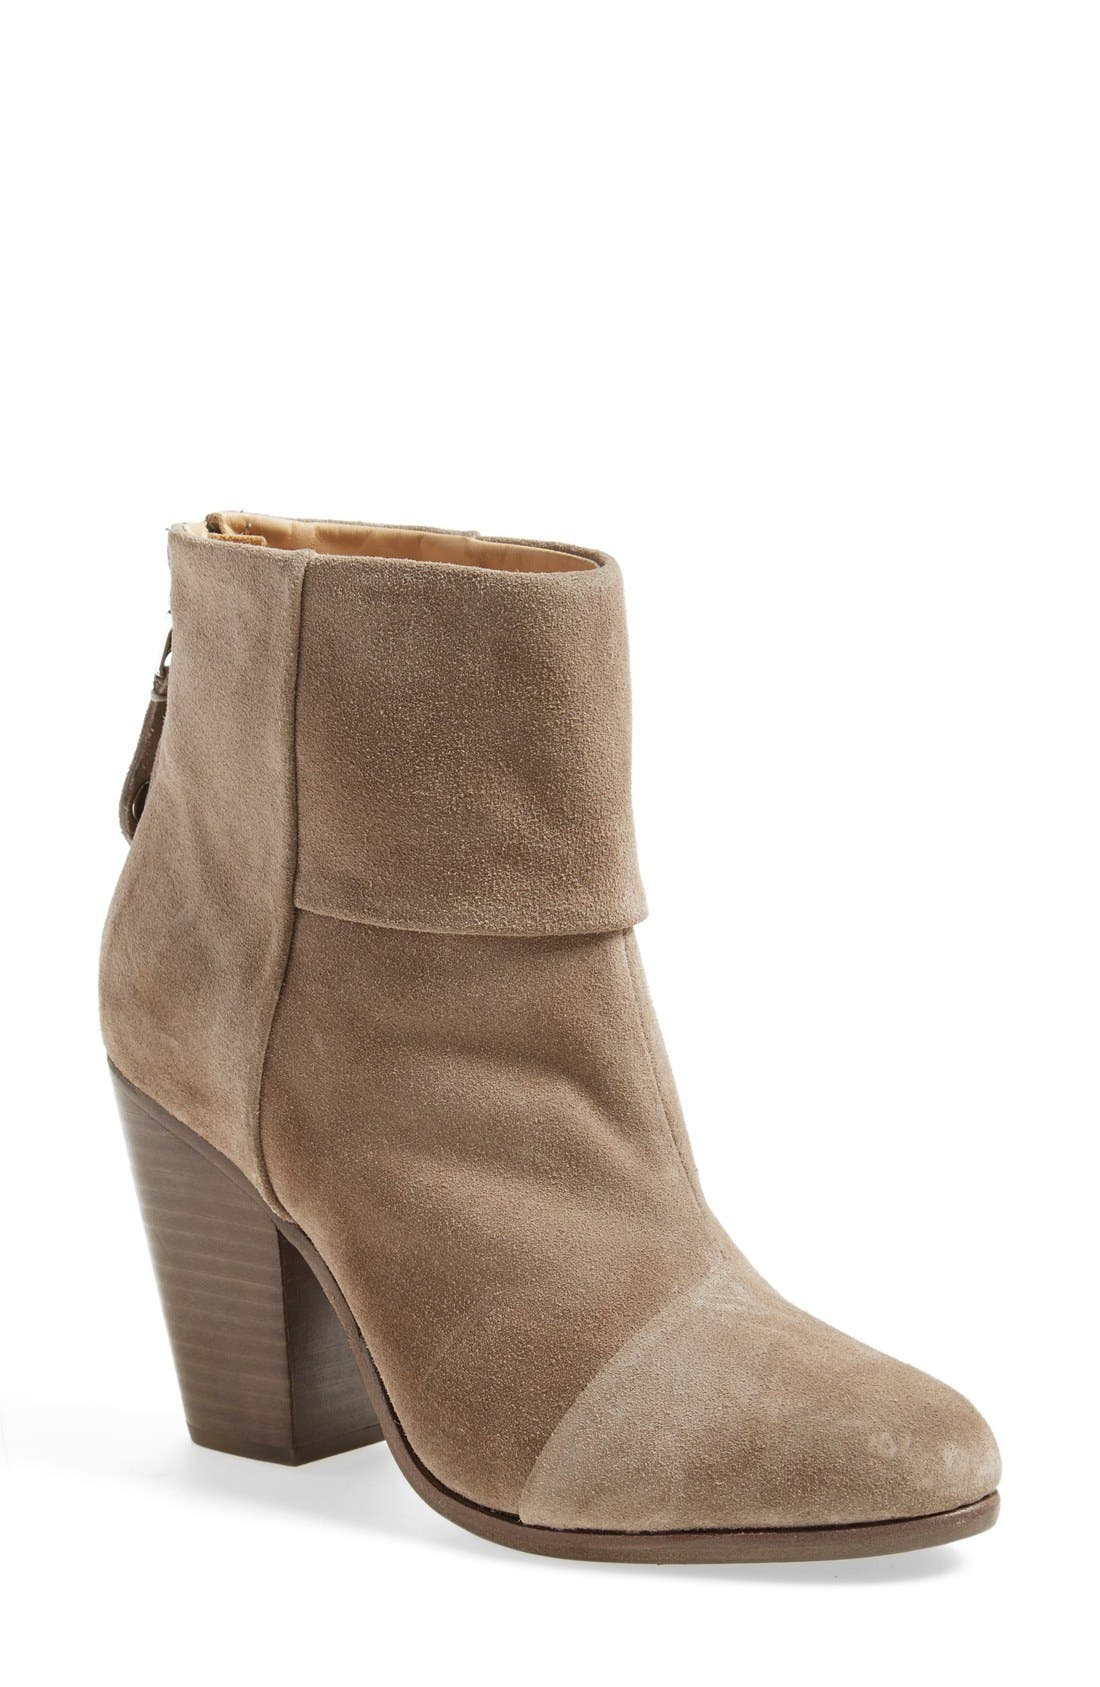 'Newbury' Bootie,                         Main,                         color, 099